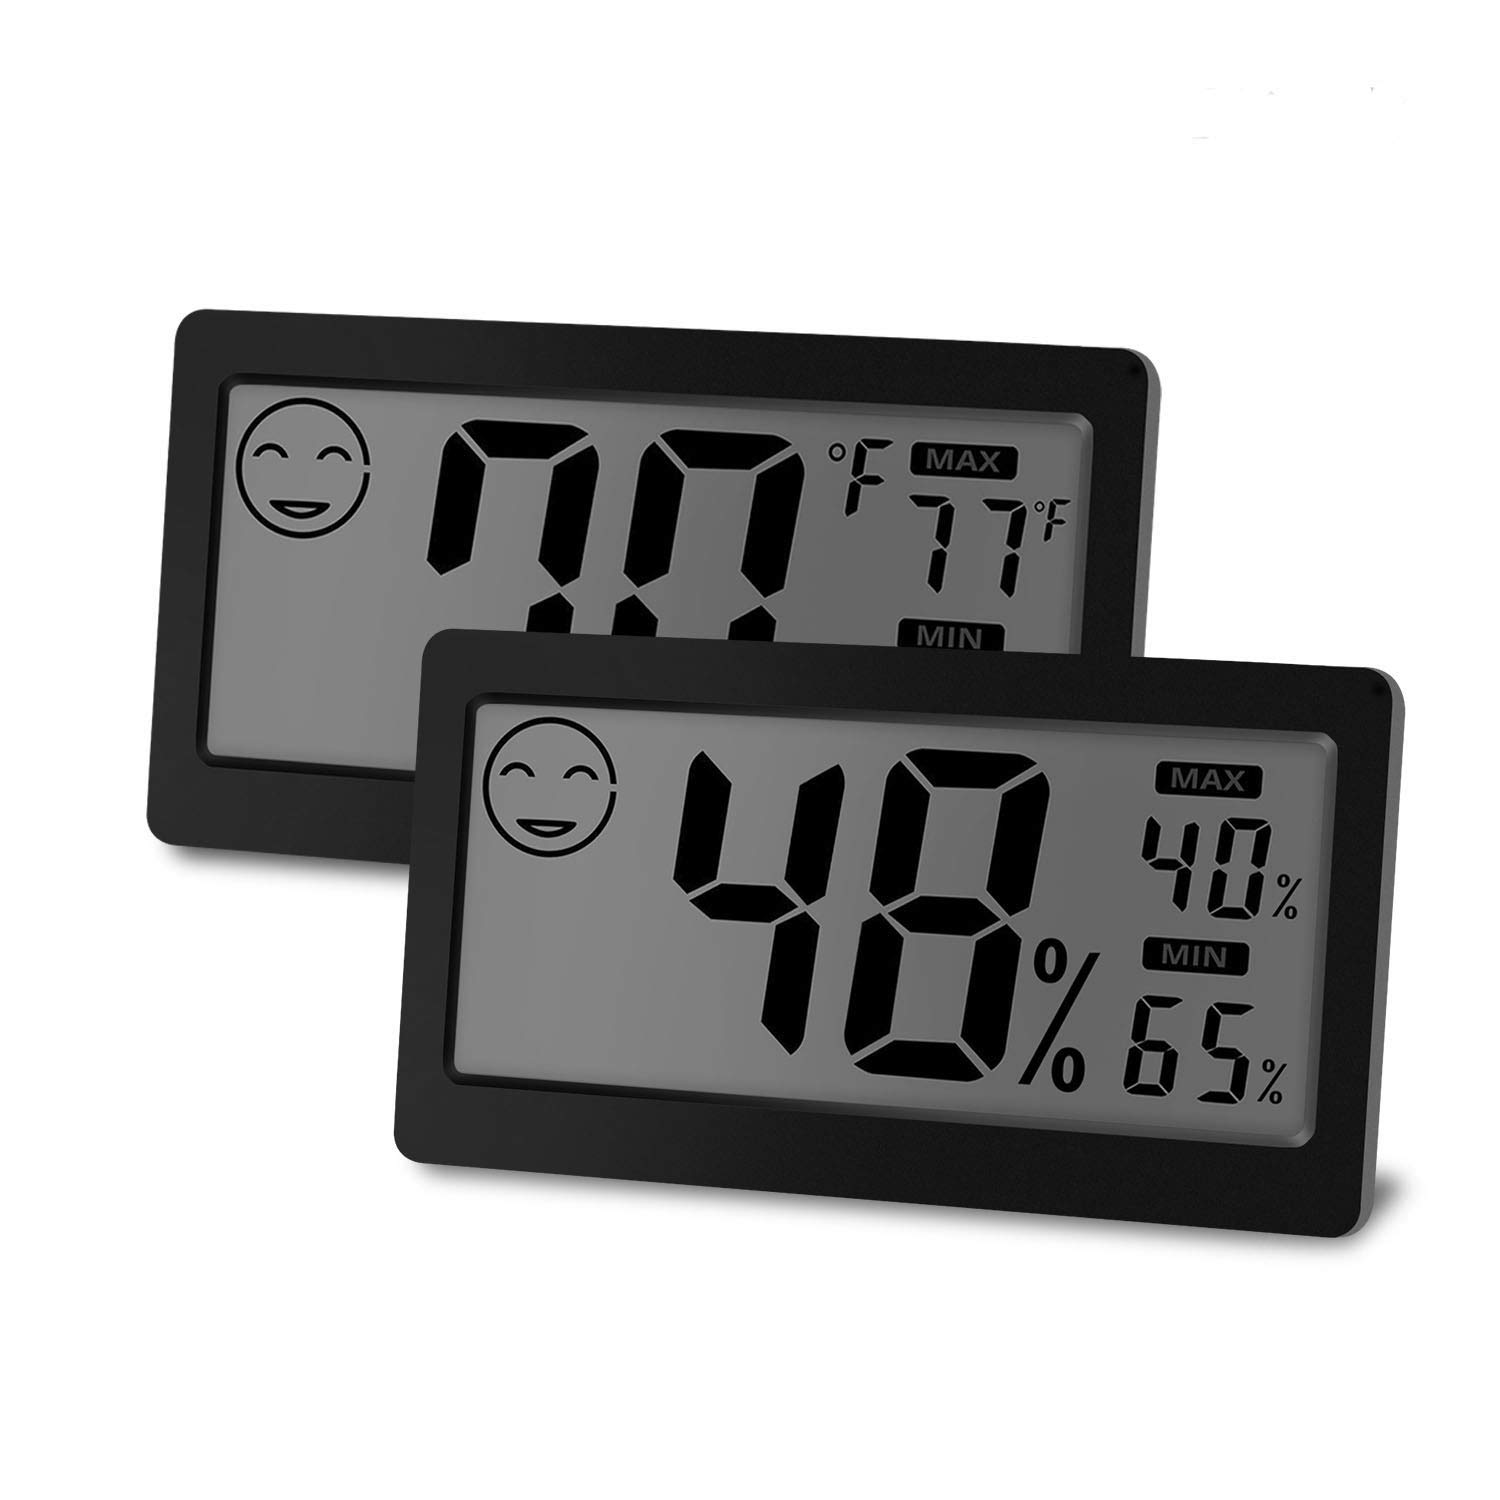 JLENOVEG Digital Indoor Thermometer Hygrometer Temperature and Humidity Display with 3.3 inch LCD Table Standing Magnet Attaching for Household Office Gym Kitchen (2)